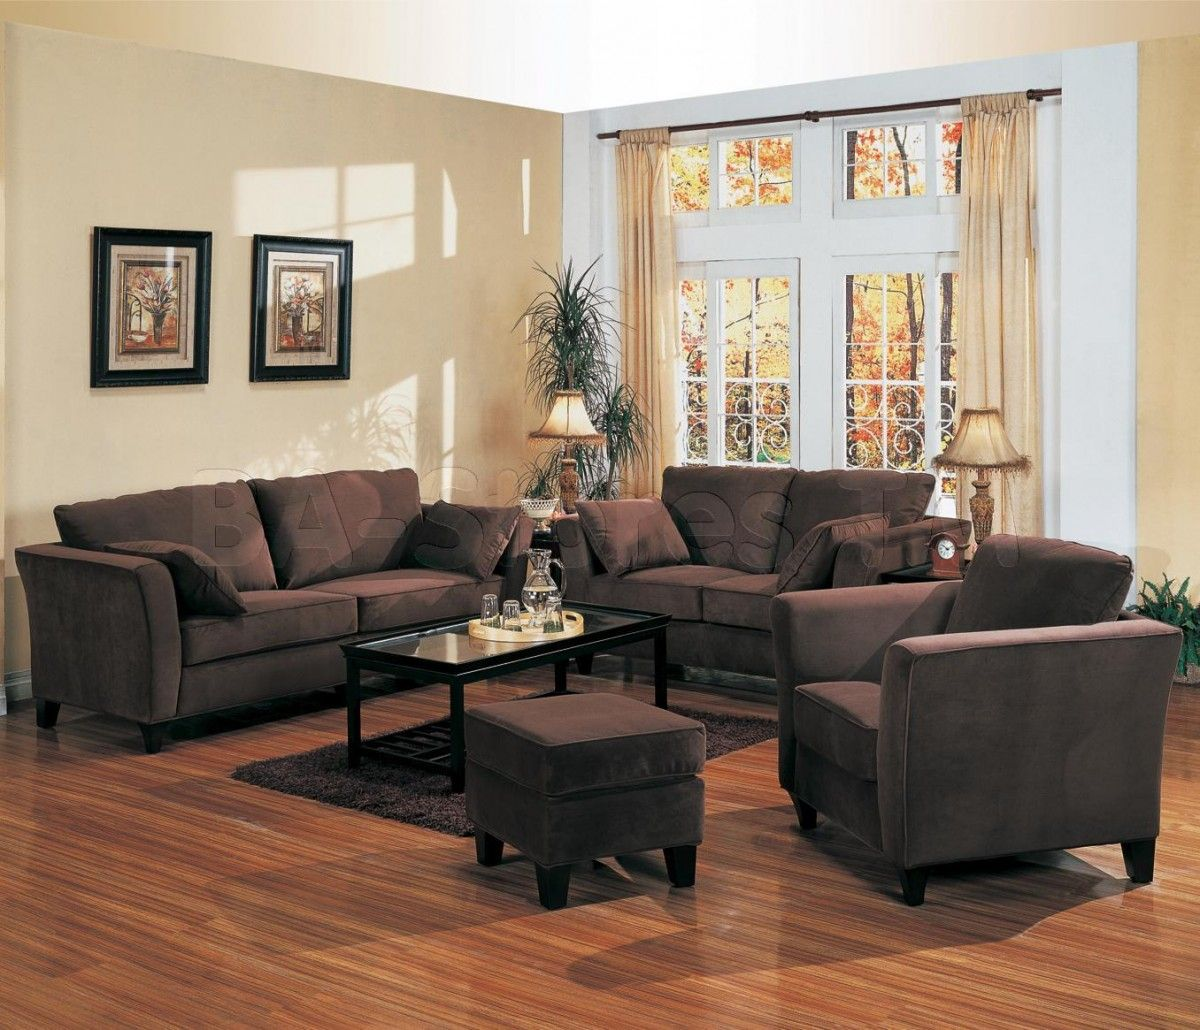 Wall Colour With Brown Furniture Wall Colors That Go With